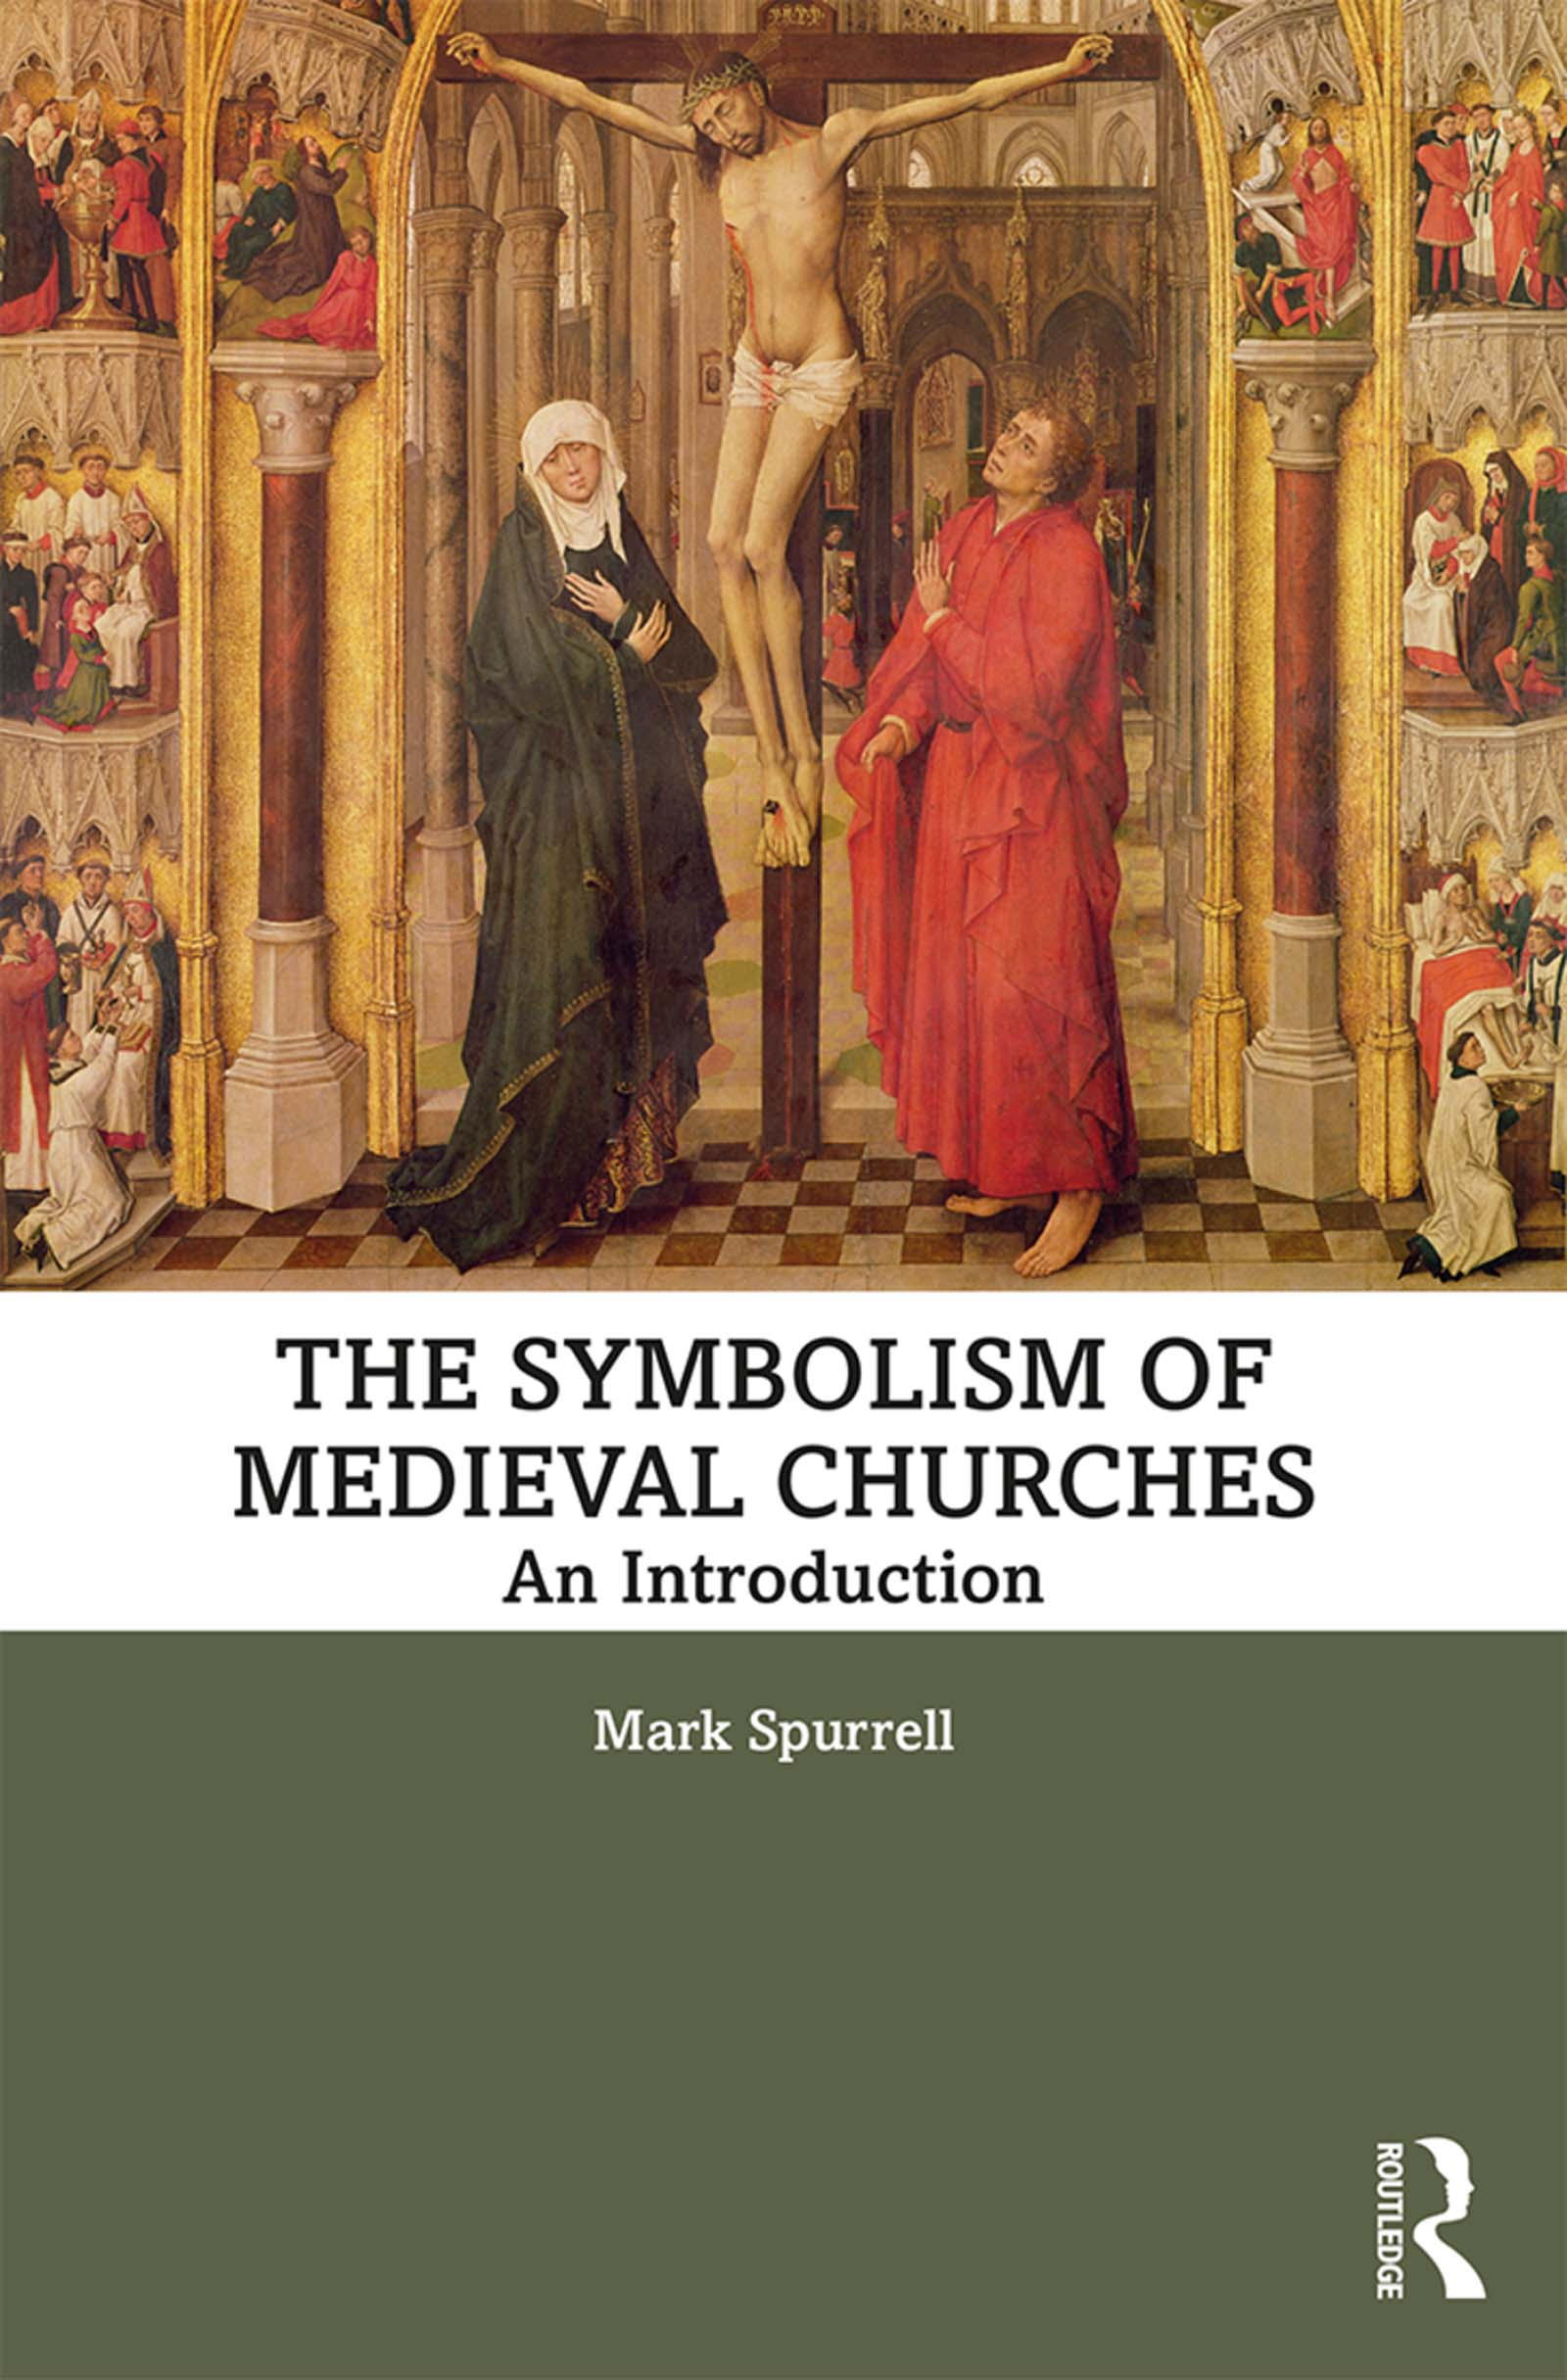 Medieval Church Symbolism: An Introduction book cover